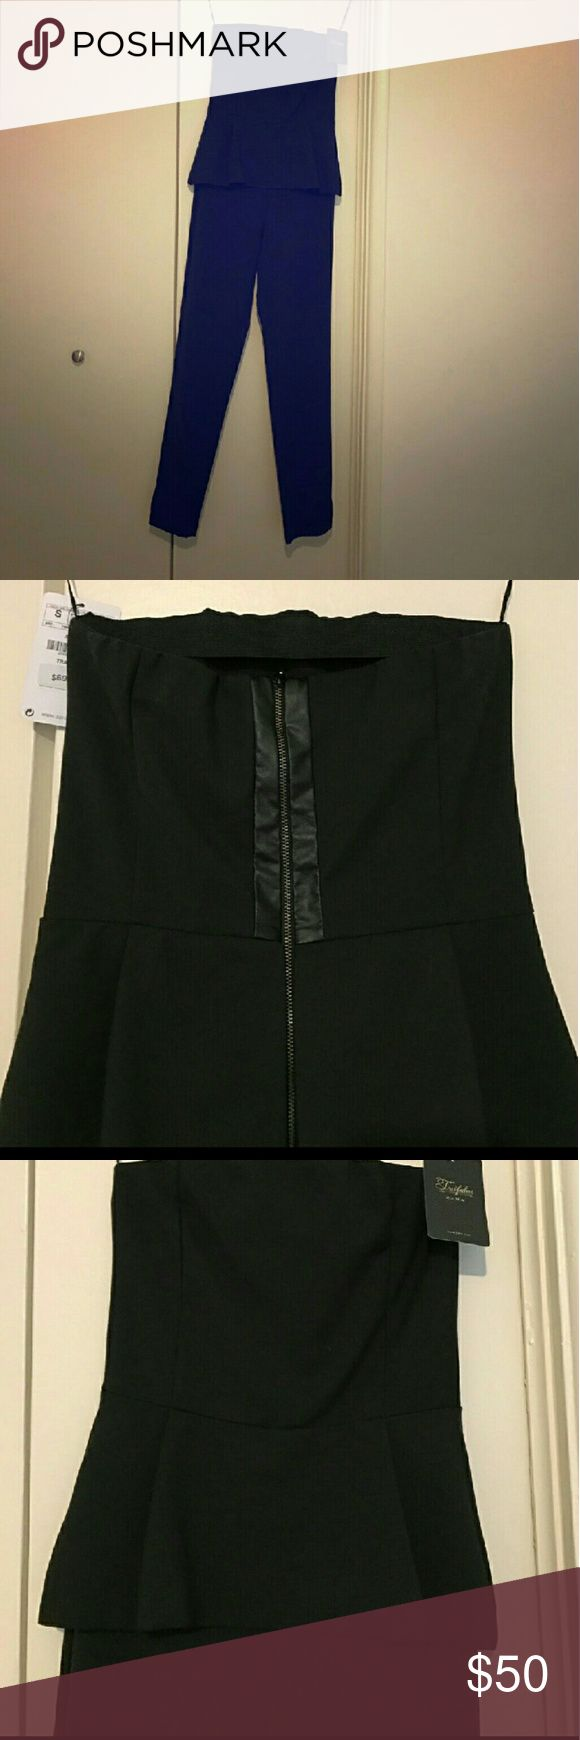 Zara Black Zara peplum pants suit.. If I like something in your closet im willing to trade 😊 Zara Other